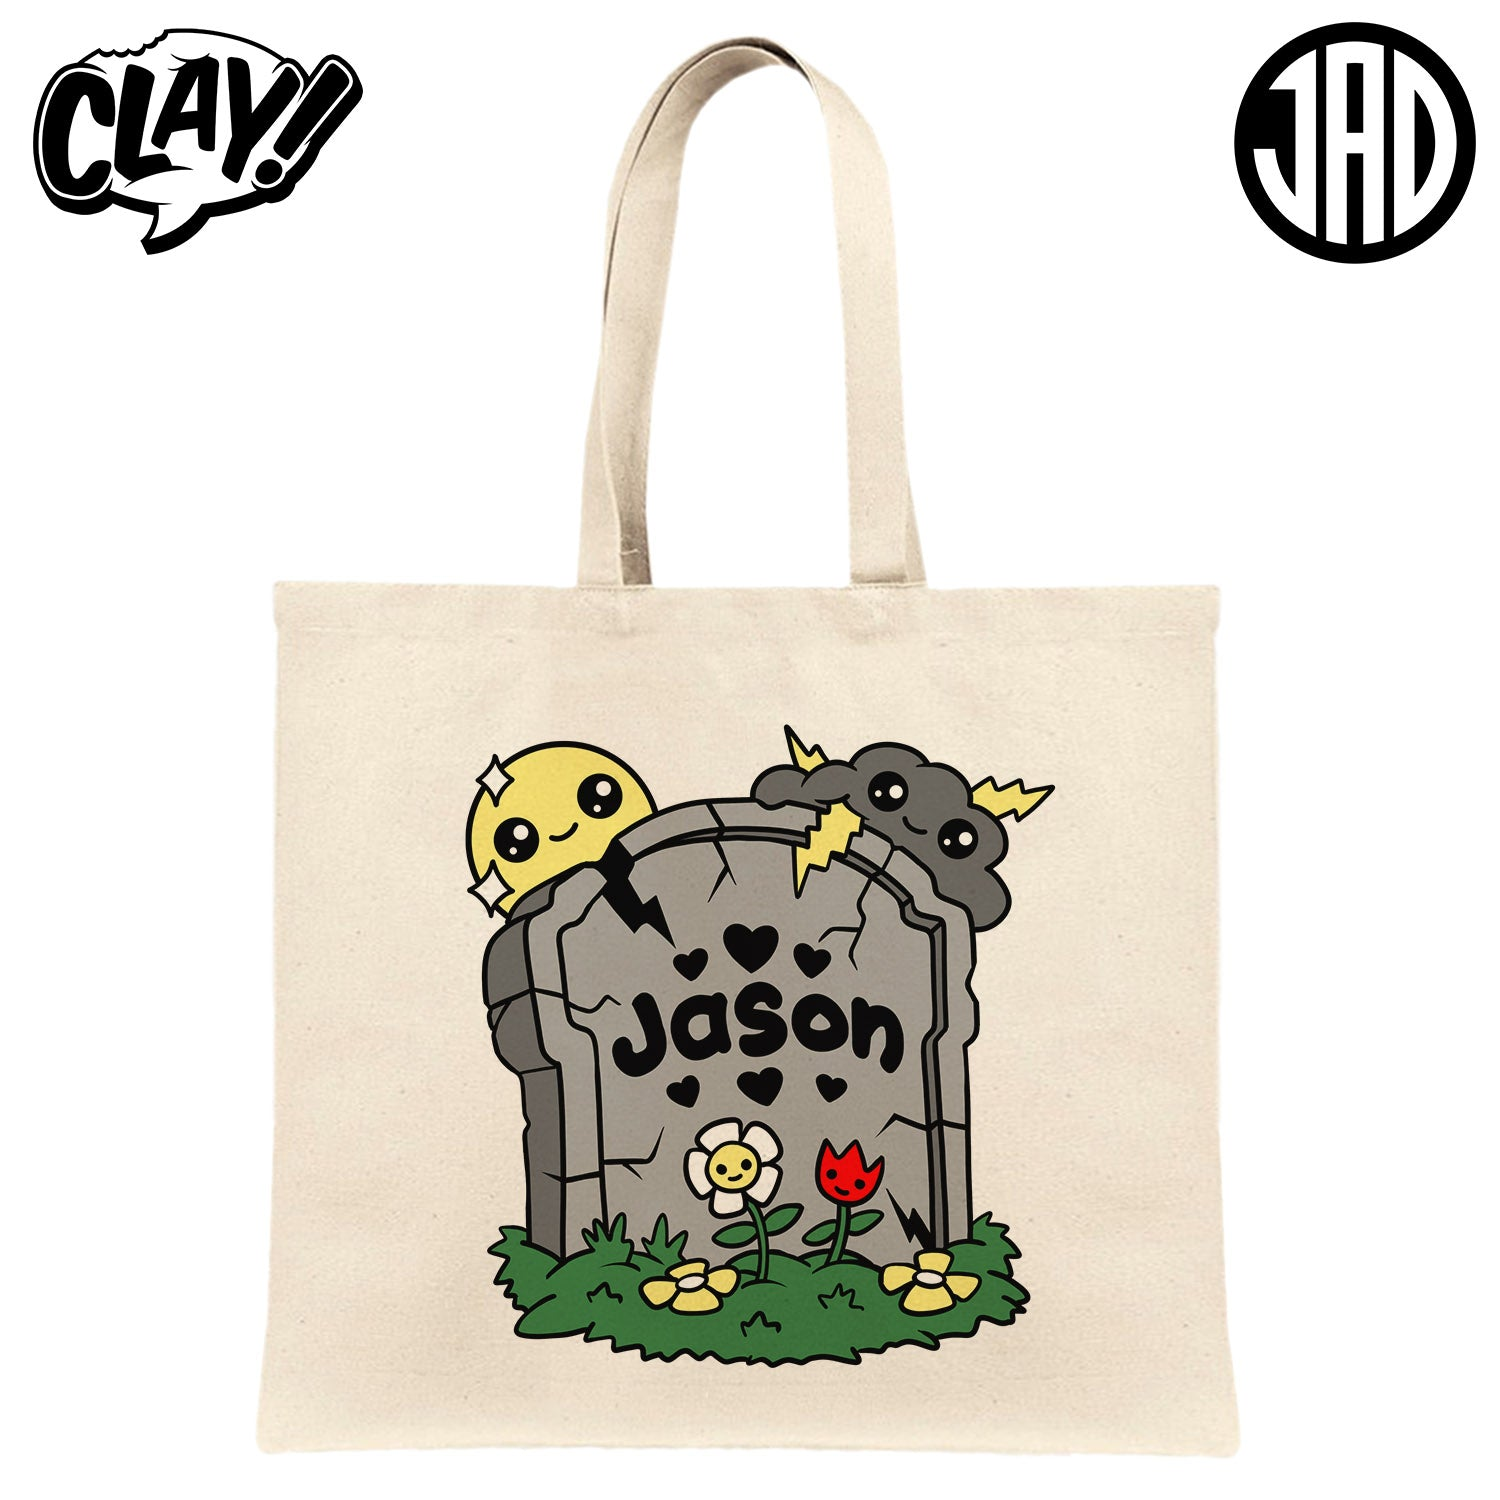 RIP Jason - Canvas Tote Bag